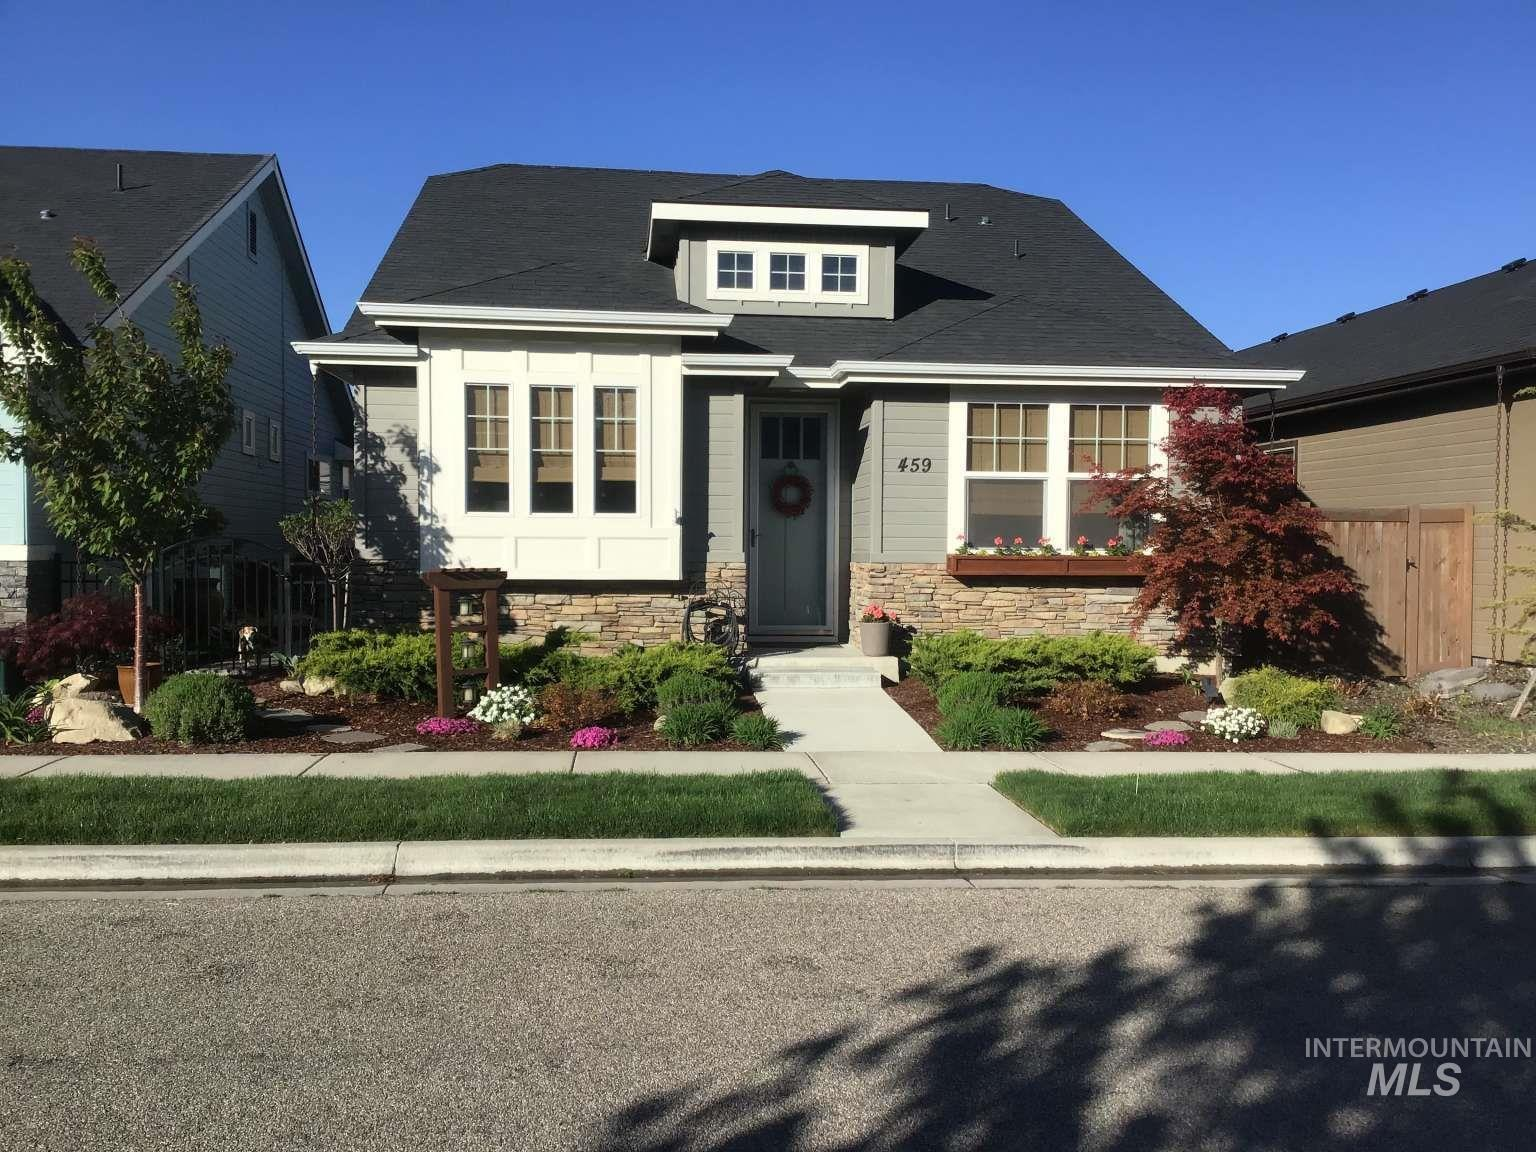 459 W Peck St Property Photo - Meridian, ID real estate listing